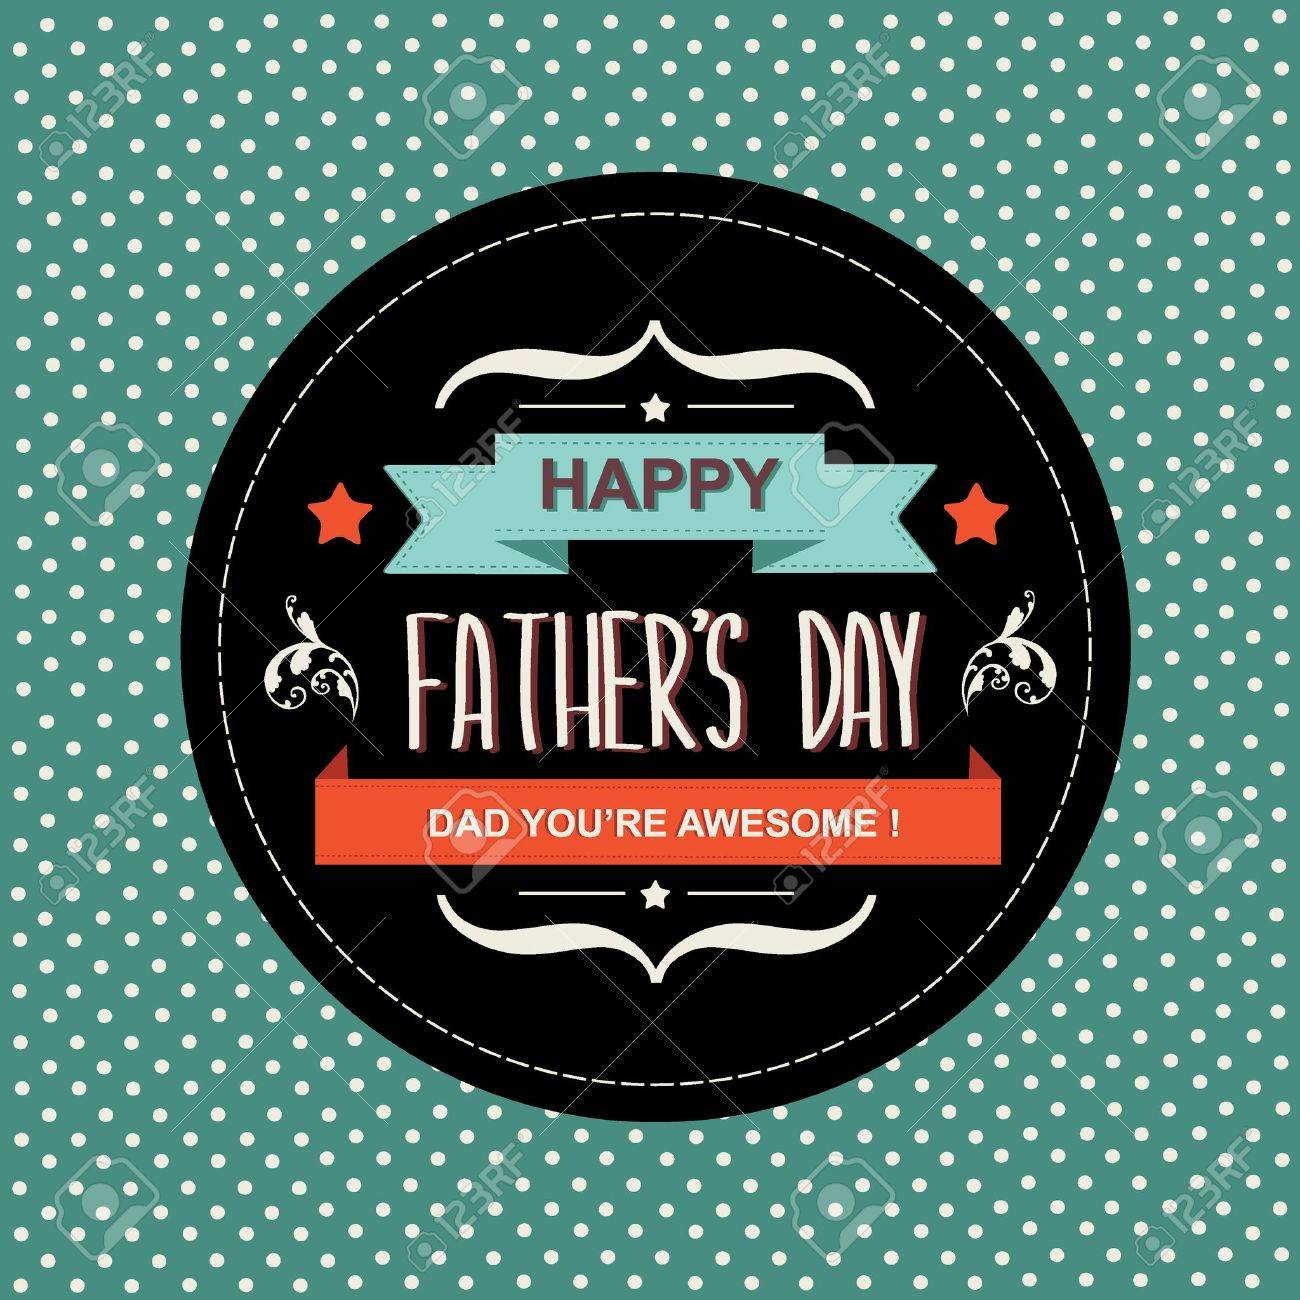 D ad poster design - Best Dad Poster Happy Father S Day Typography Illustration Illustration